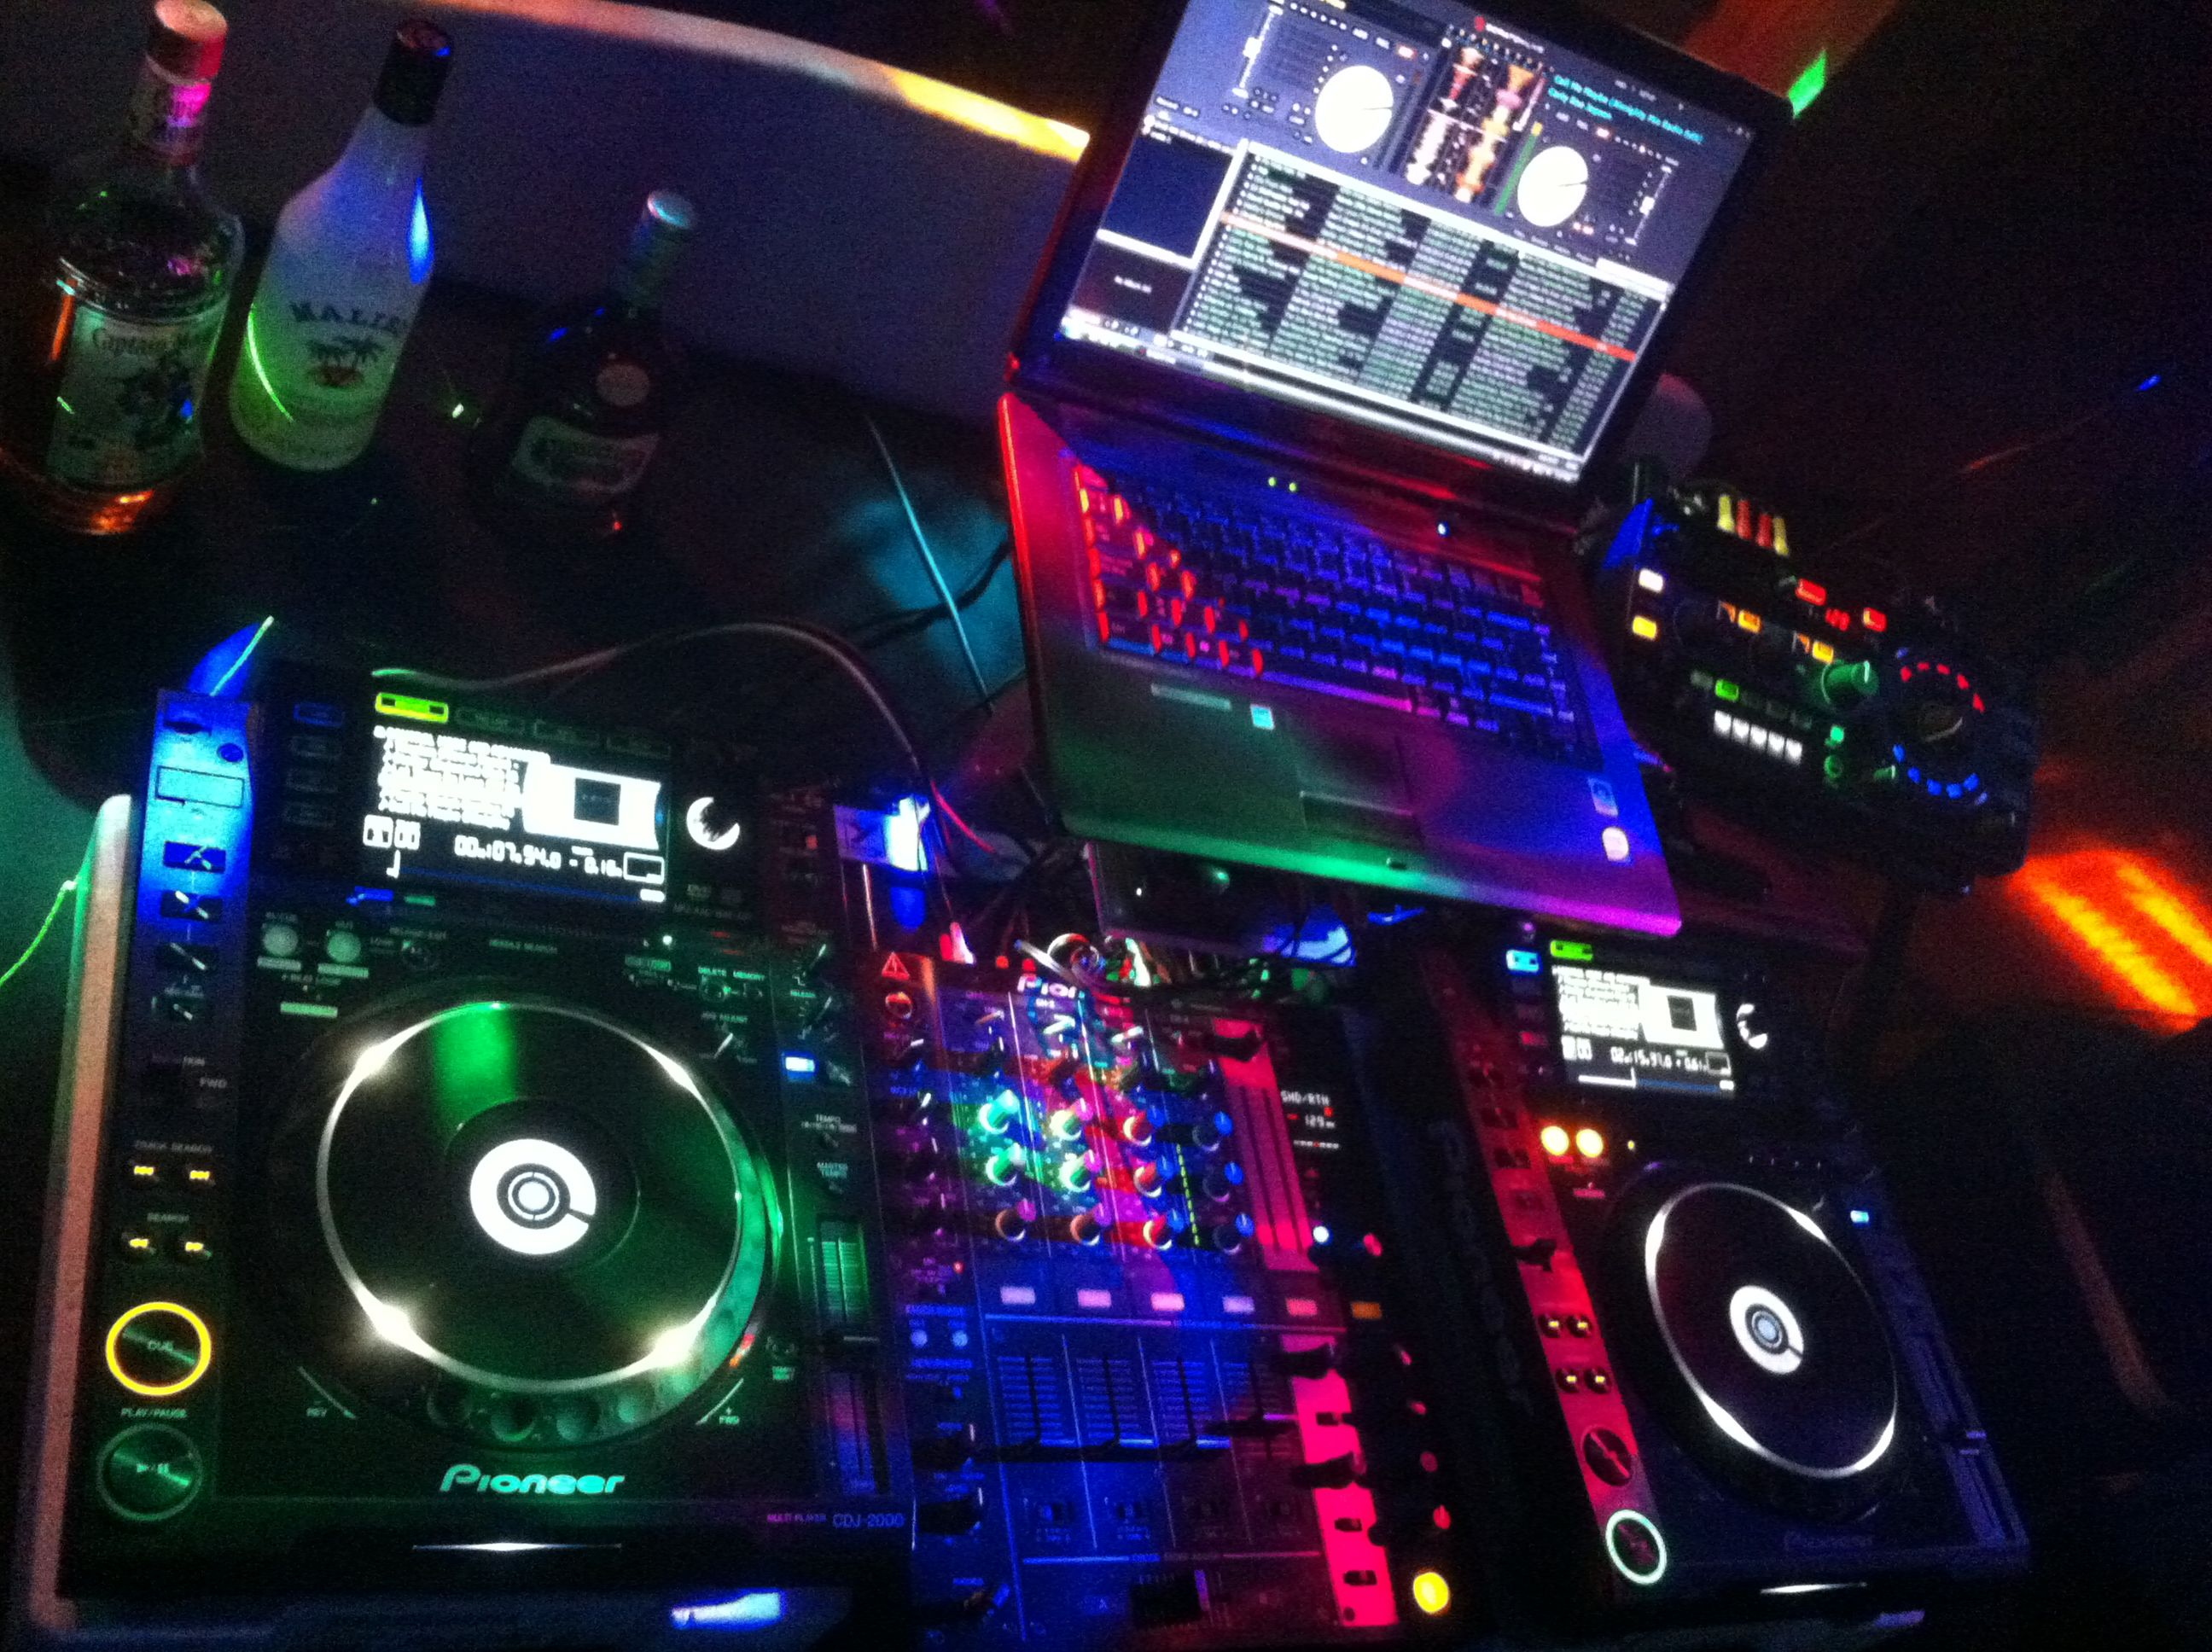 Pioneer DJ products!